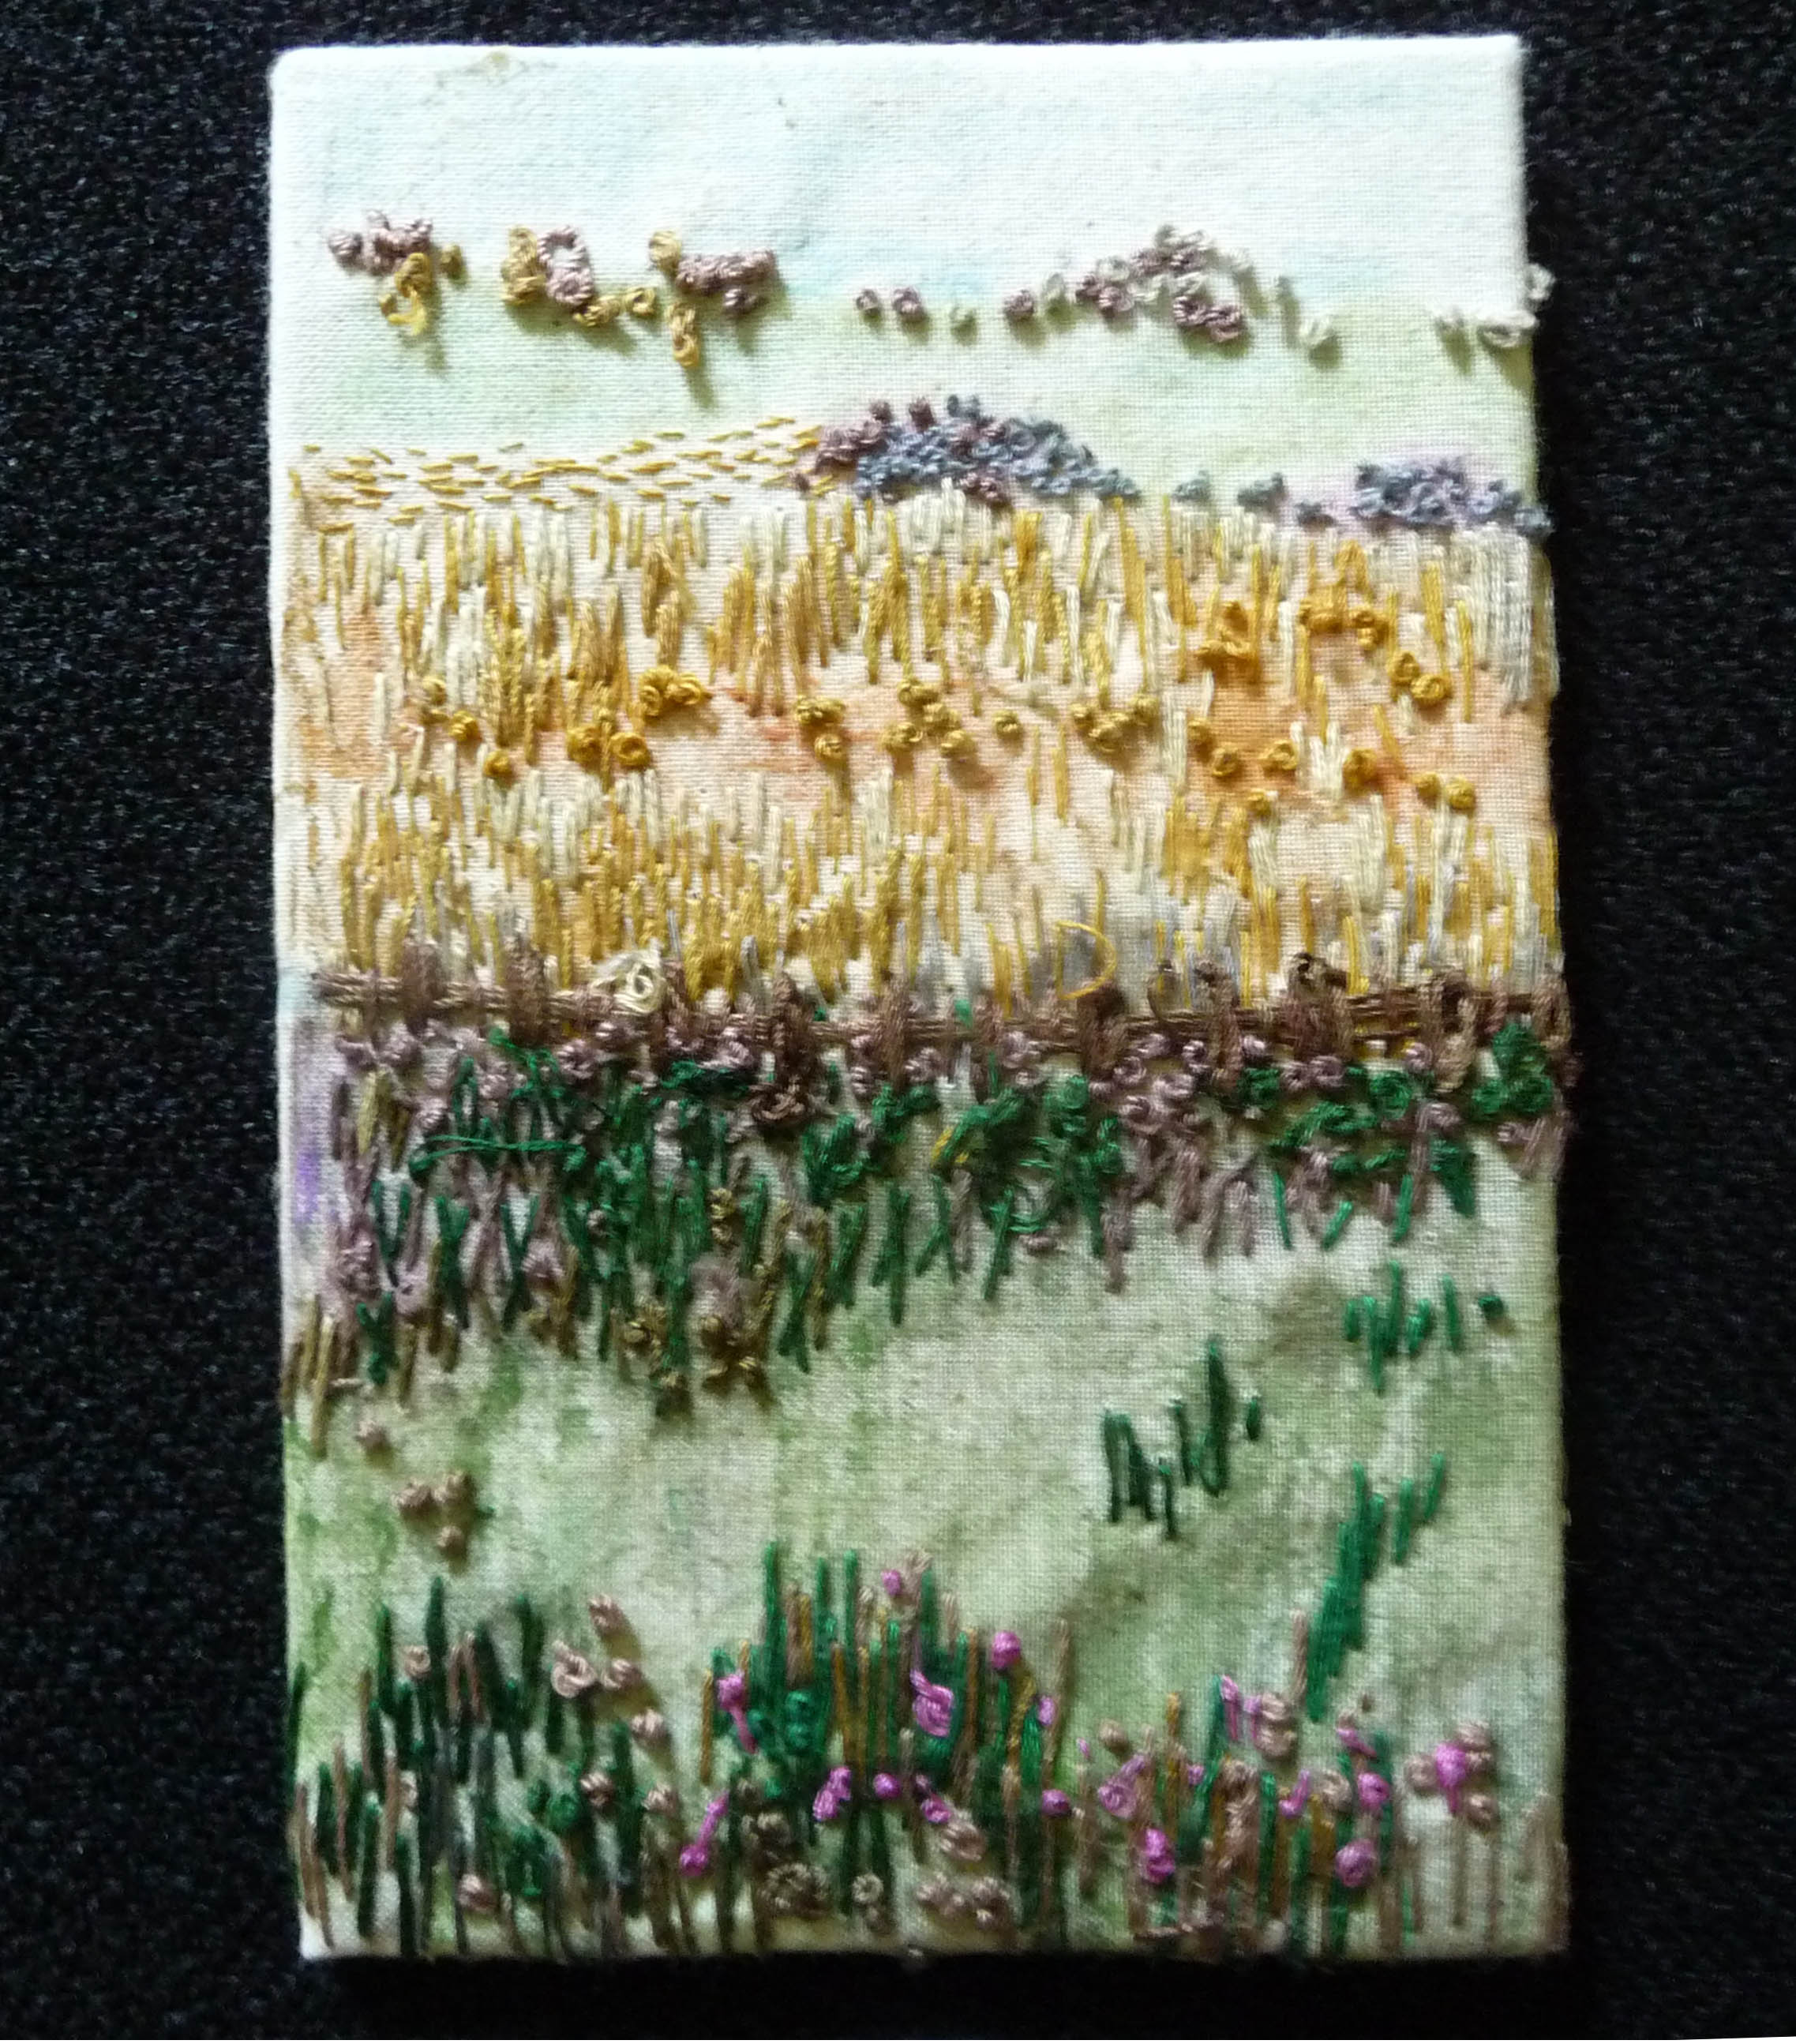 GROWTH postcard by June Hodgkiss